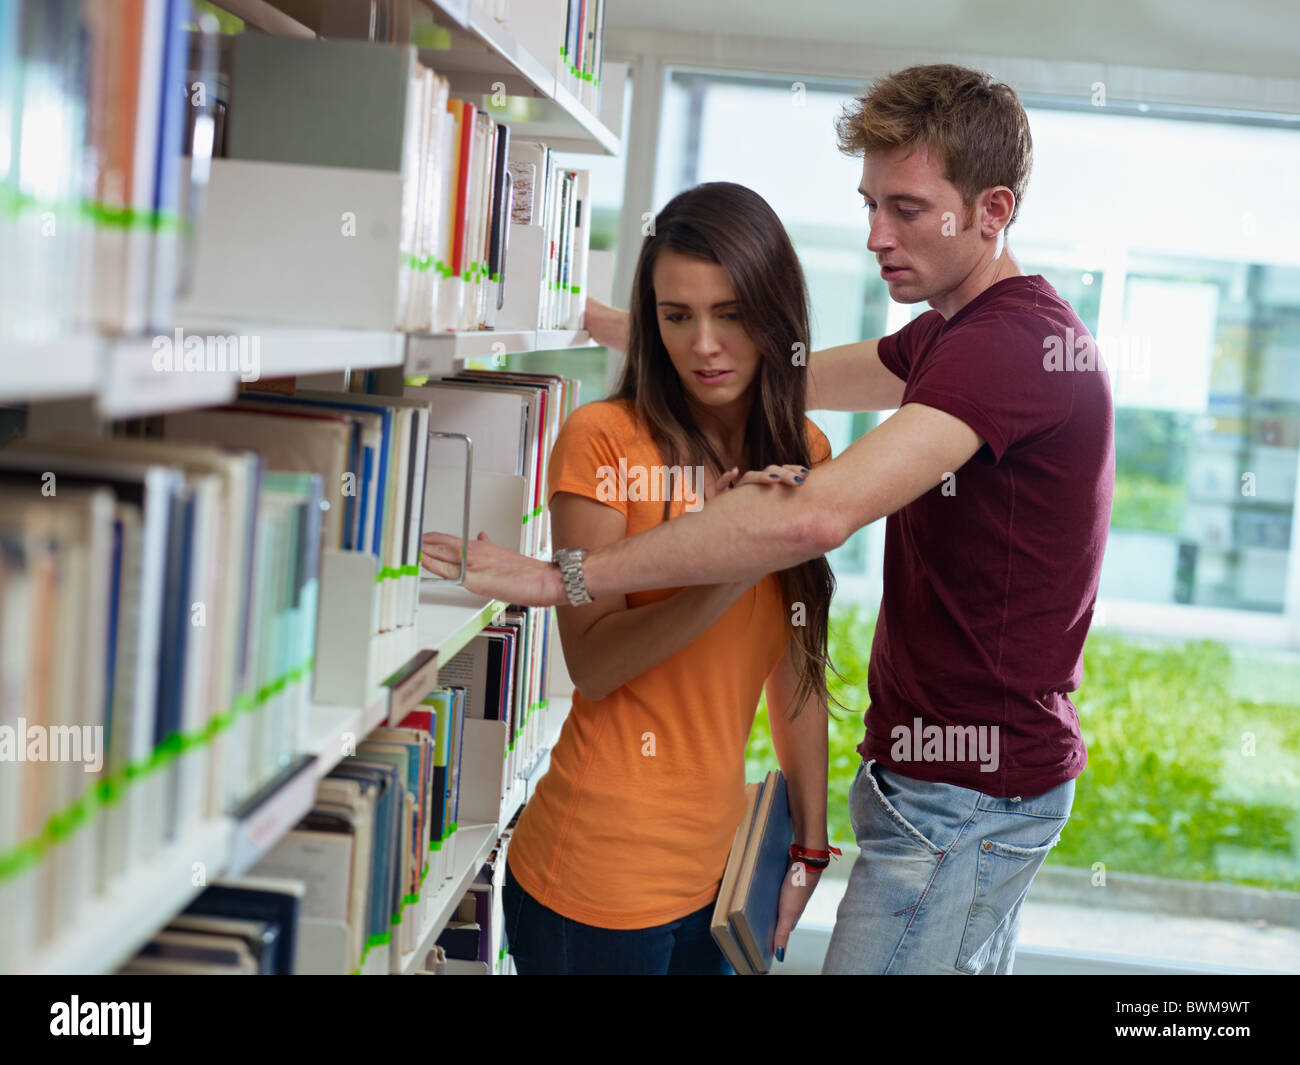 two caucasian students leaving each other. Horizontal shape, side view, waist up - Stock Image